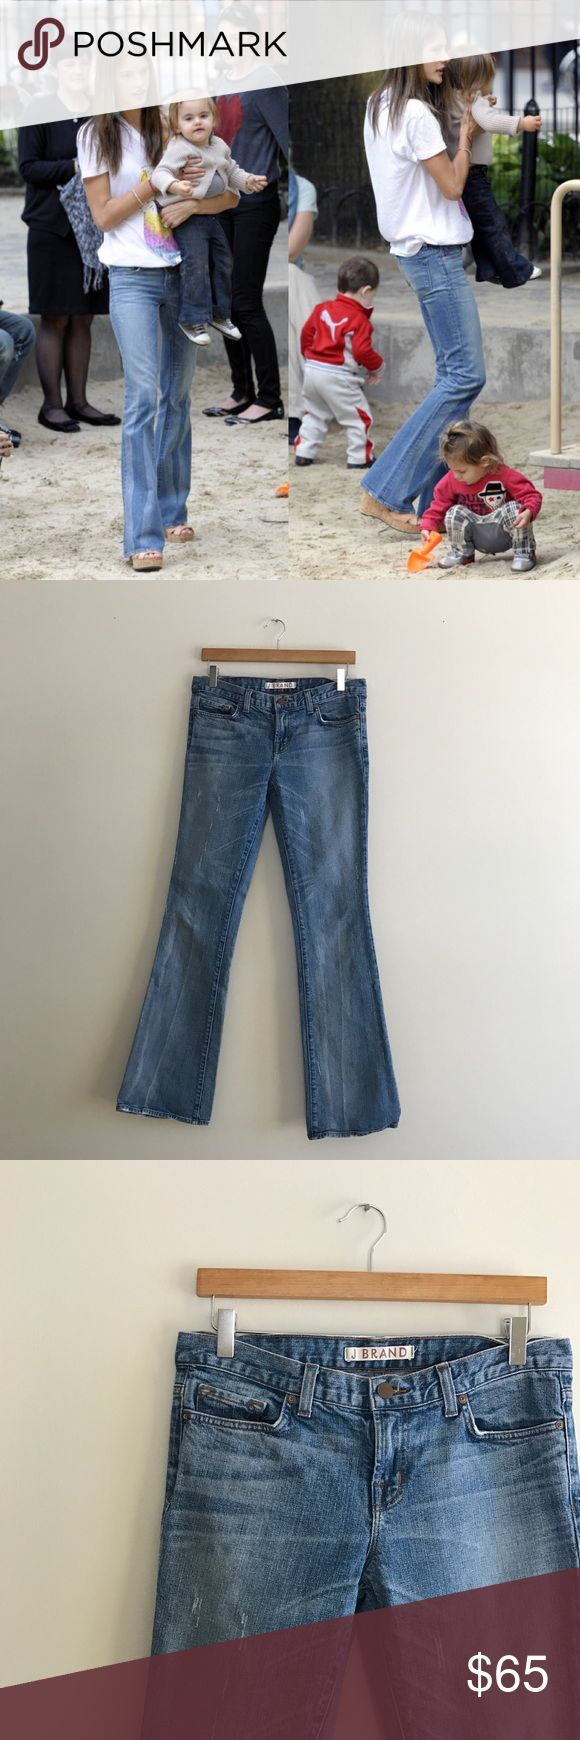 J Brand || Smith W Distressed Flared Leg Jeans As seen on Alessandra Ambrosio and Tori Spelling! Style # 1017O225. Smith W cut. Light wash and distressed denim. Medium flare leg, tight at knee. 33 inch inseam. 98% polyester / 2% Elastane. Mid-rise. Good condition! J Brand Jeans Flare & Wide Leg